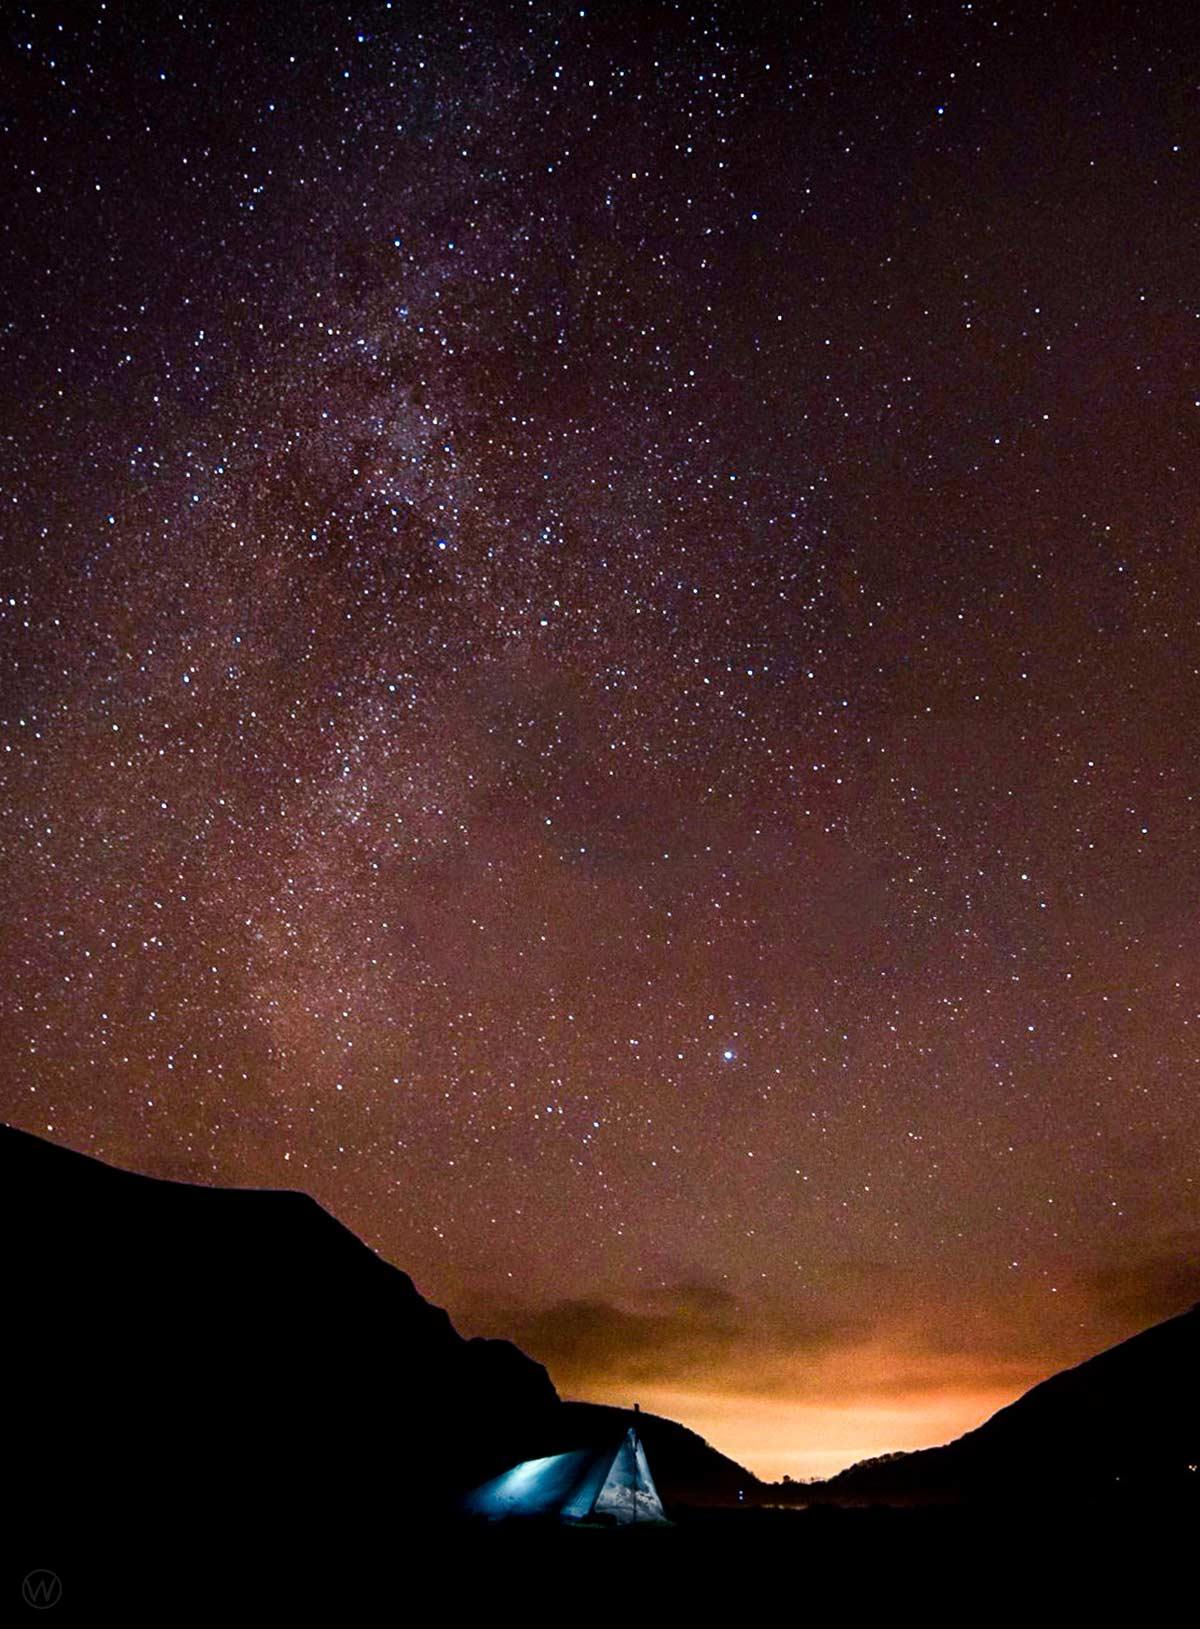 Photographing the stars at Llyn Cwellyn